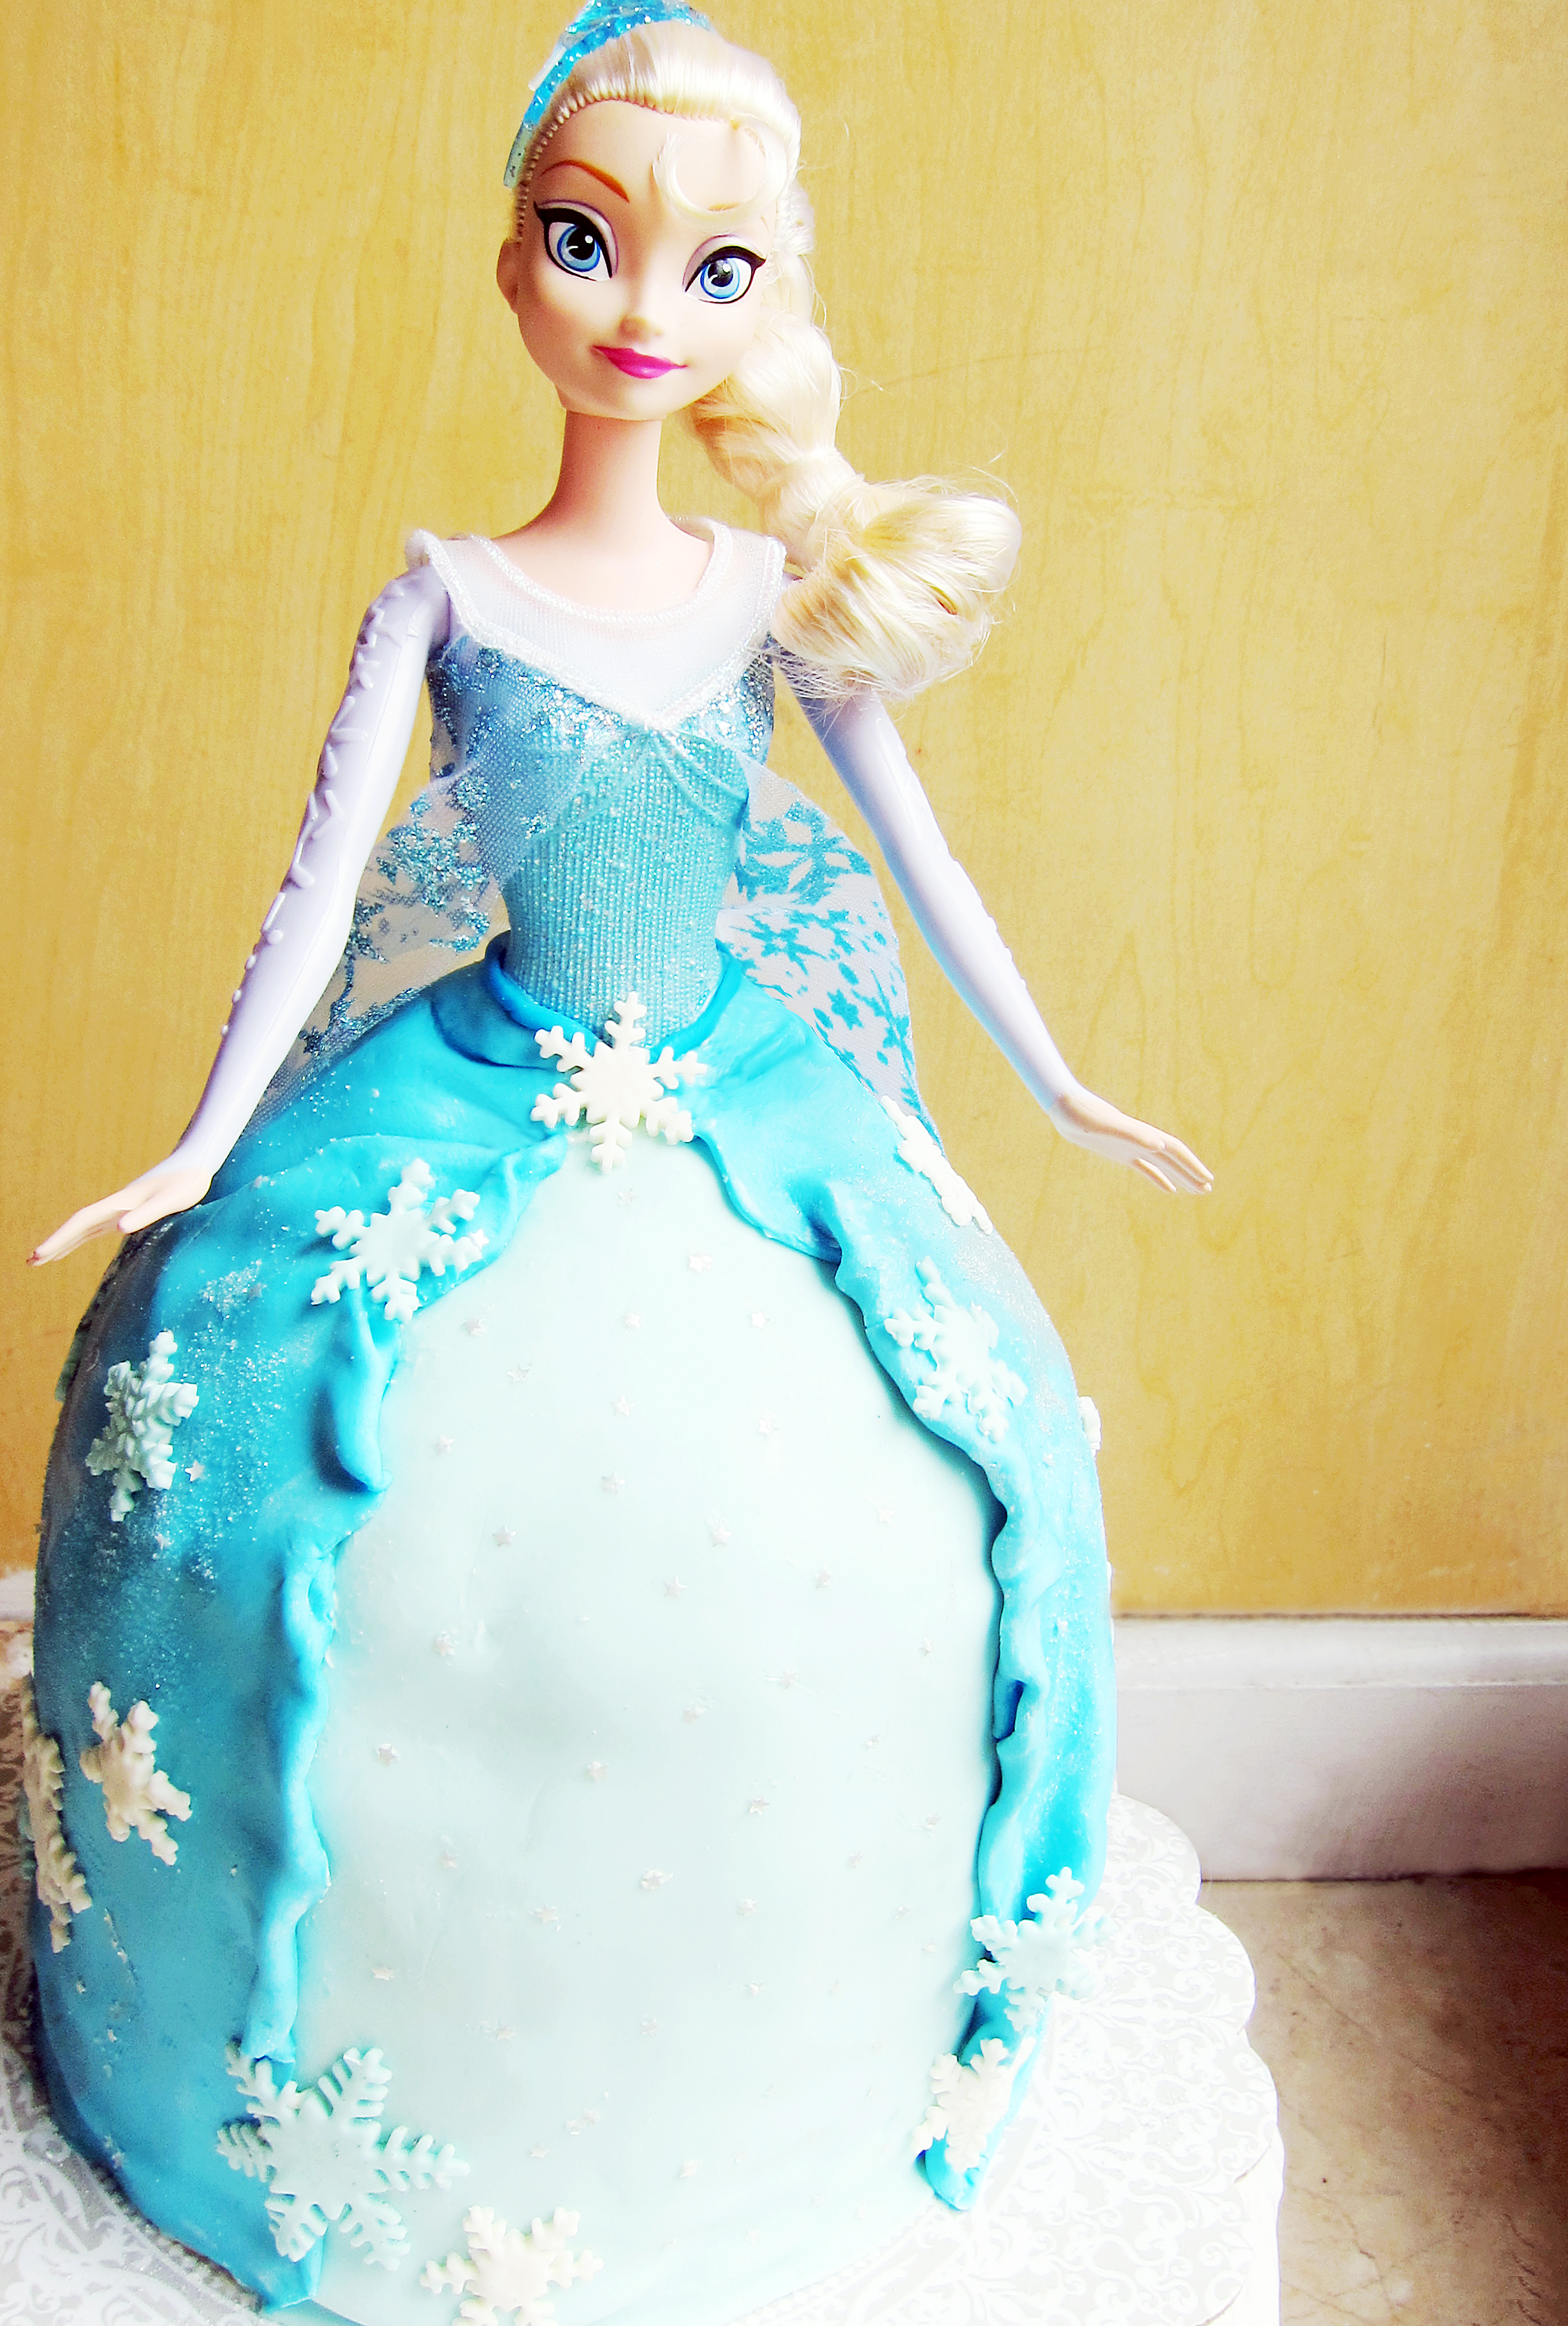 How To Make Simple Doll Cake